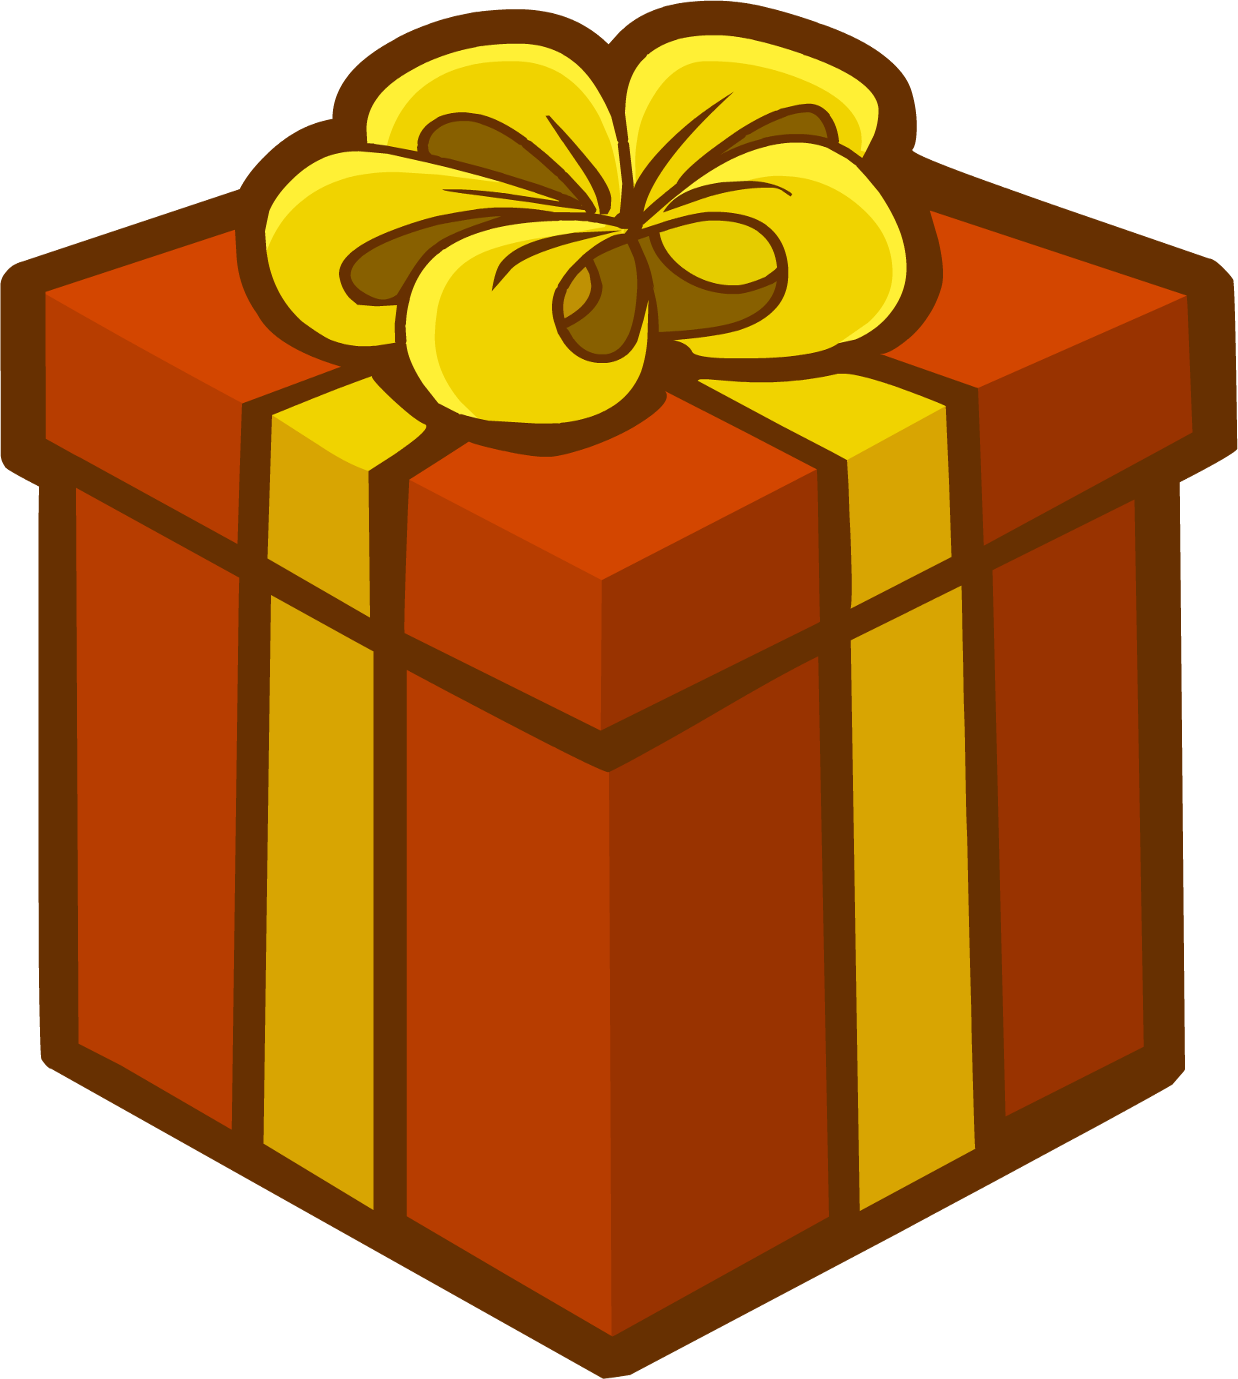 Gift clipart house png. Image holiday emoticons club